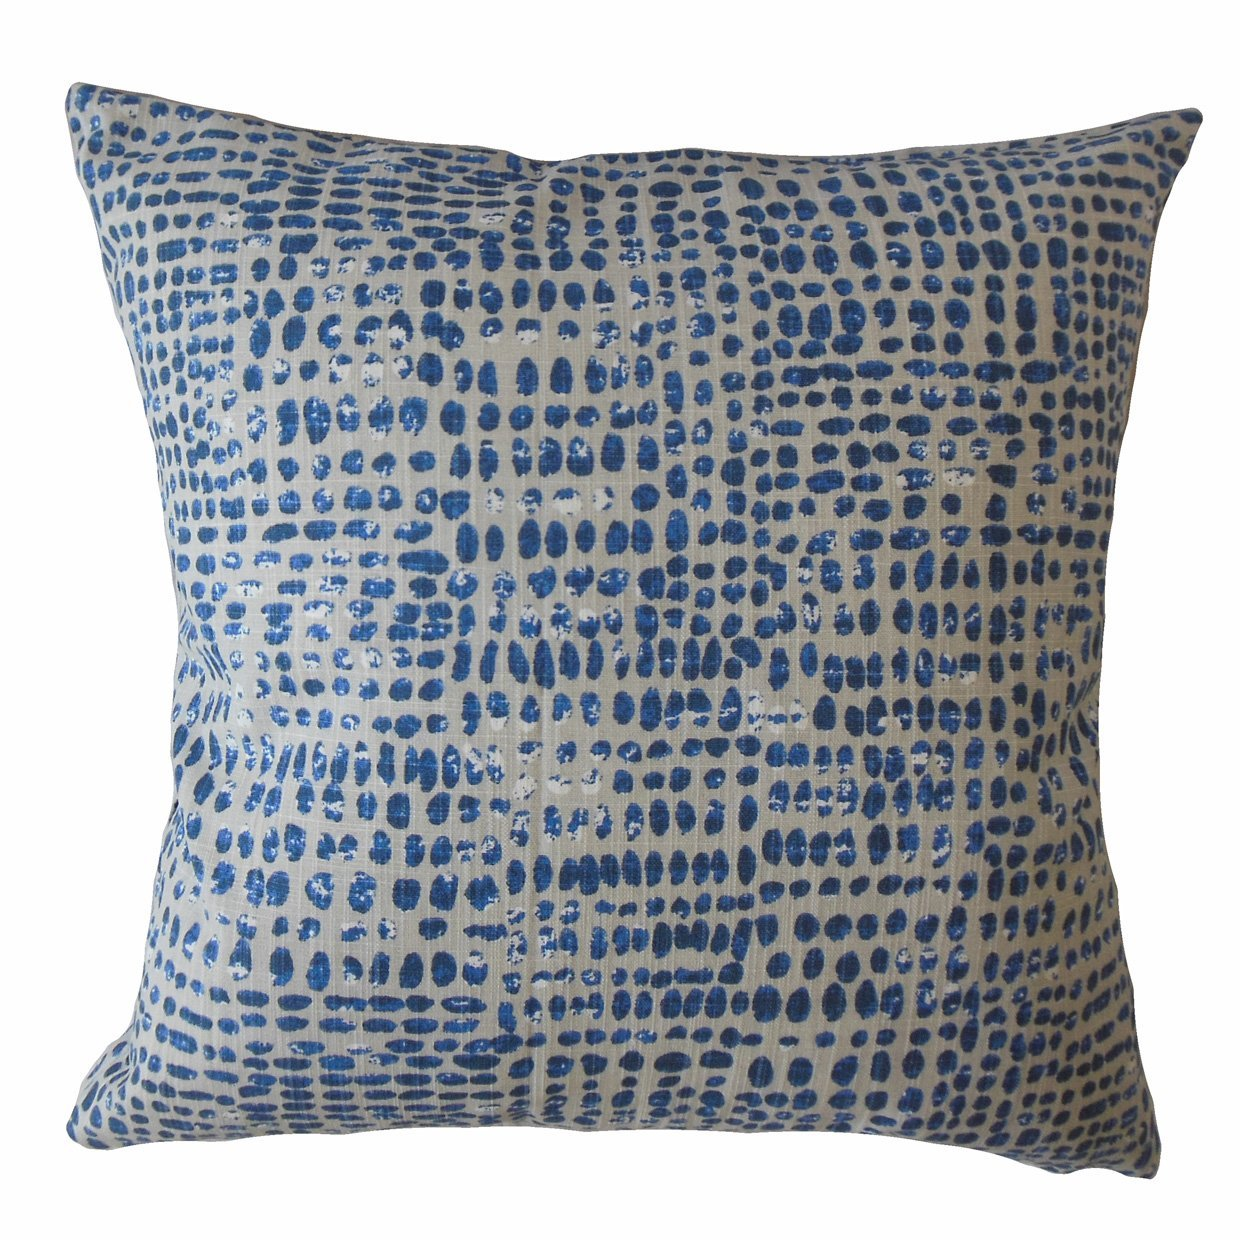 Blue Cotton Polka Dot Boho Throw Pillow Cover